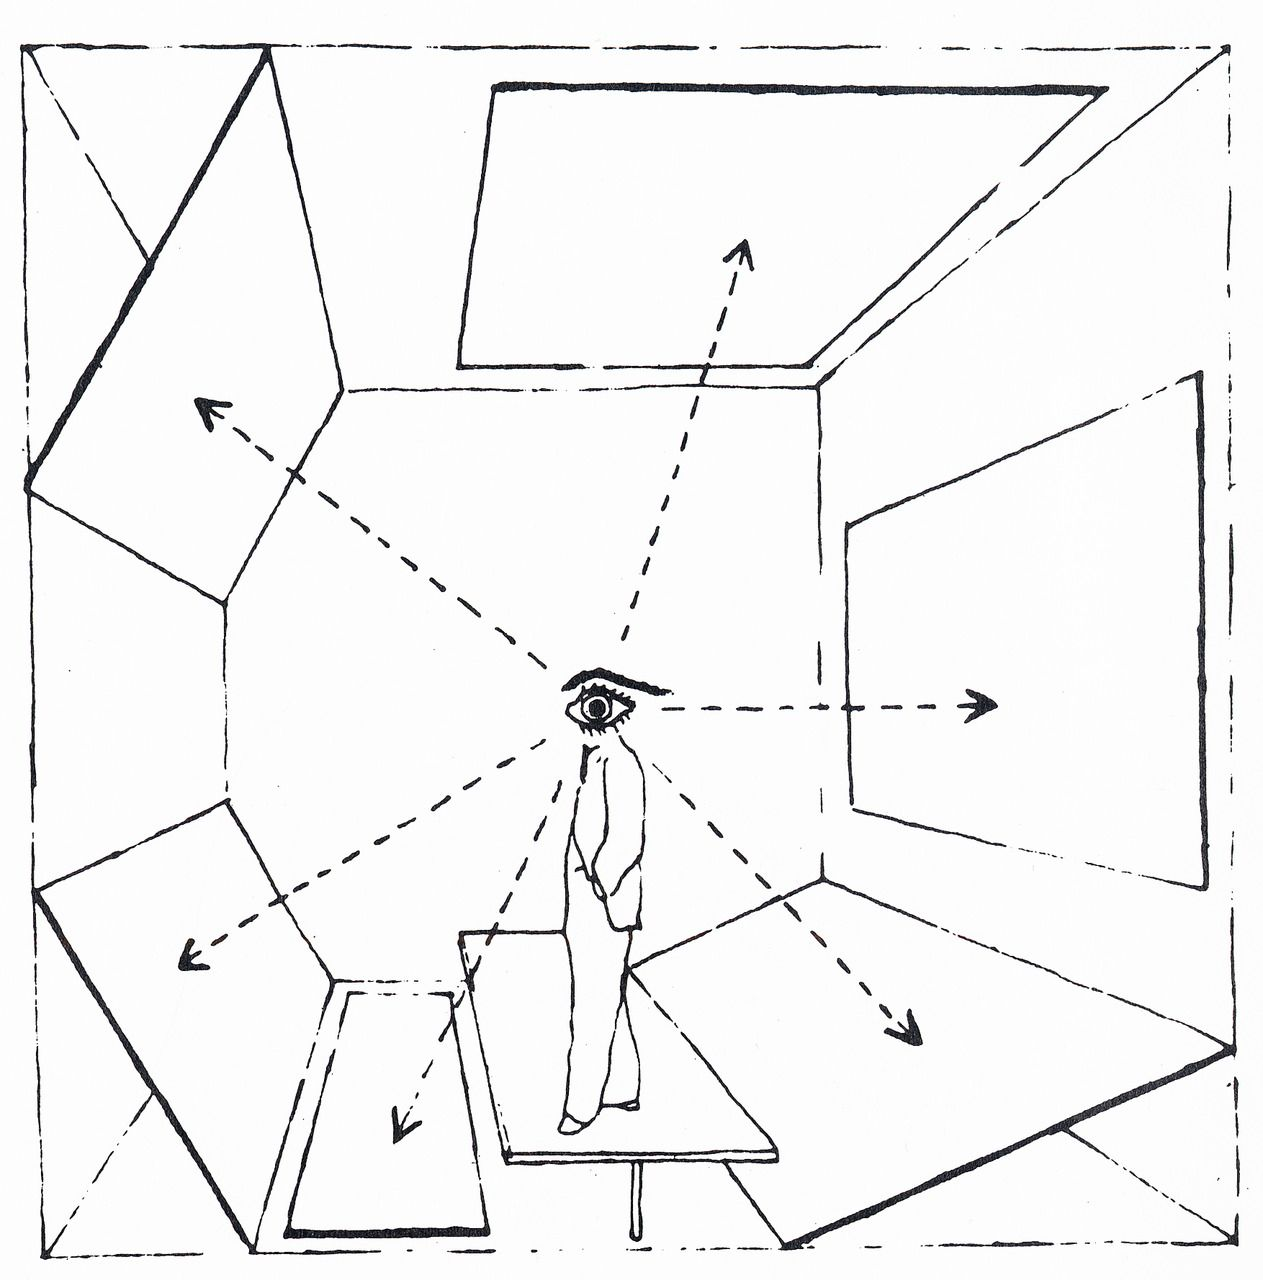 Diagram Of 360 Degrees Trusted Wiring Degree Archiveofaffinities Herbert Bayer Field 180